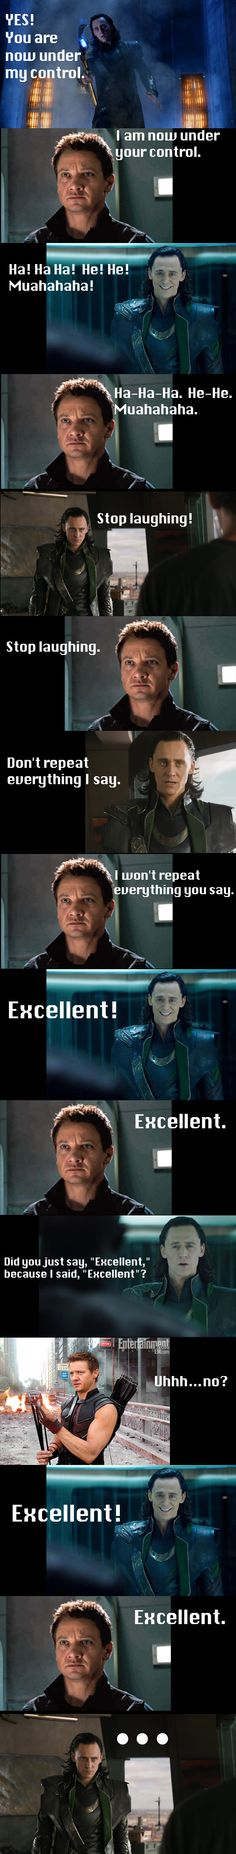 Meet the Robinsons dialogue in the Avengers.